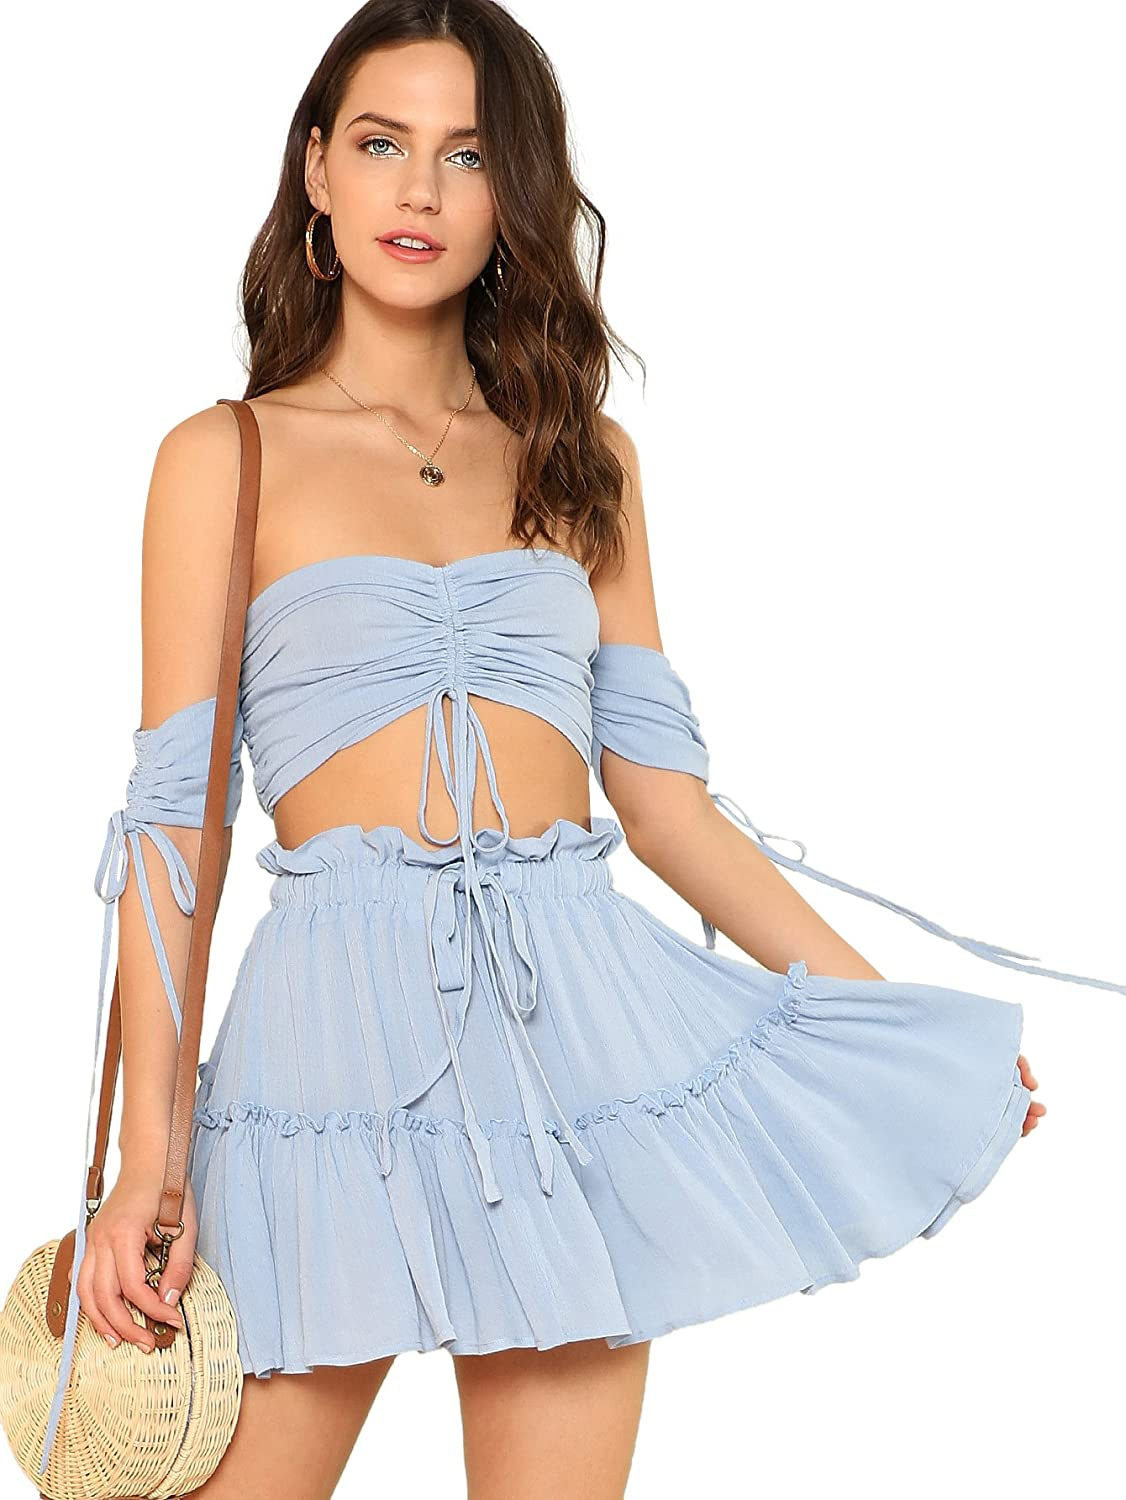 e86af4351c10 Floerns Women's Two Piece Outfit Off Shoulder Drawstring Crop Top and Skirt  Set at Amazon Women's Clothing store: